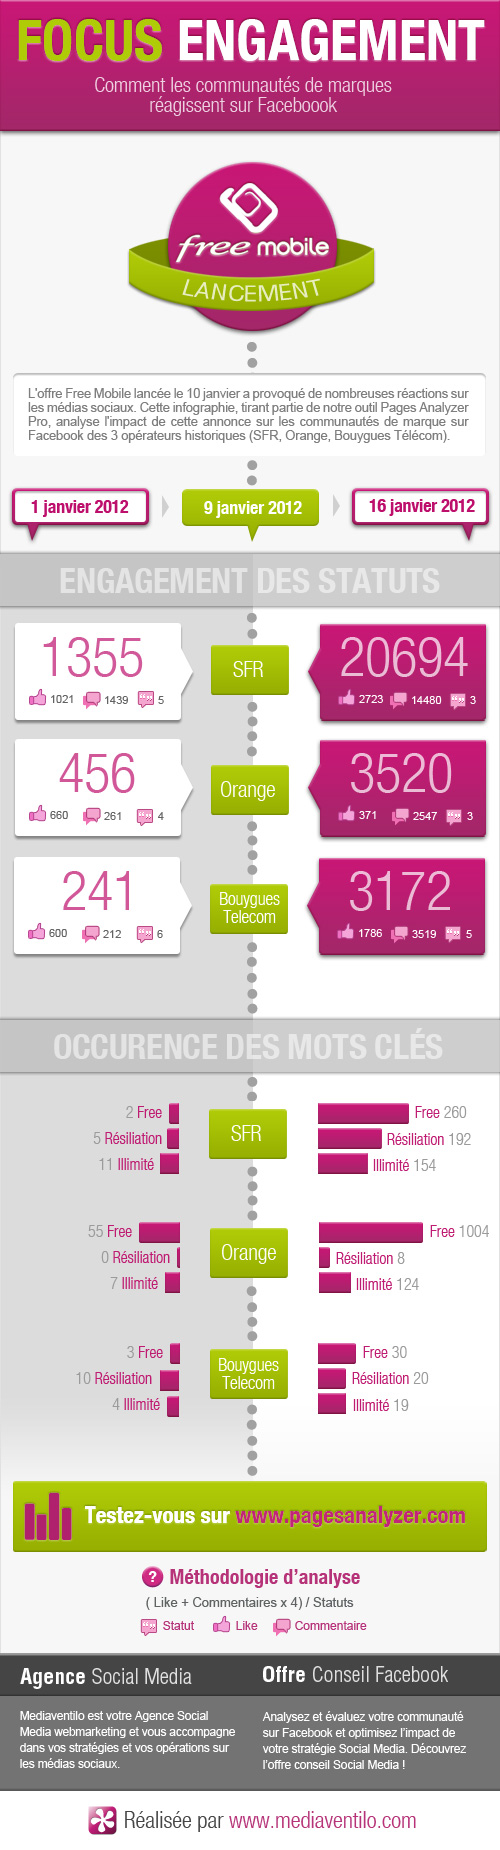 free mobile infographie des communaut s facebook sfr orange et bouygues t l com mediaventilo. Black Bedroom Furniture Sets. Home Design Ideas